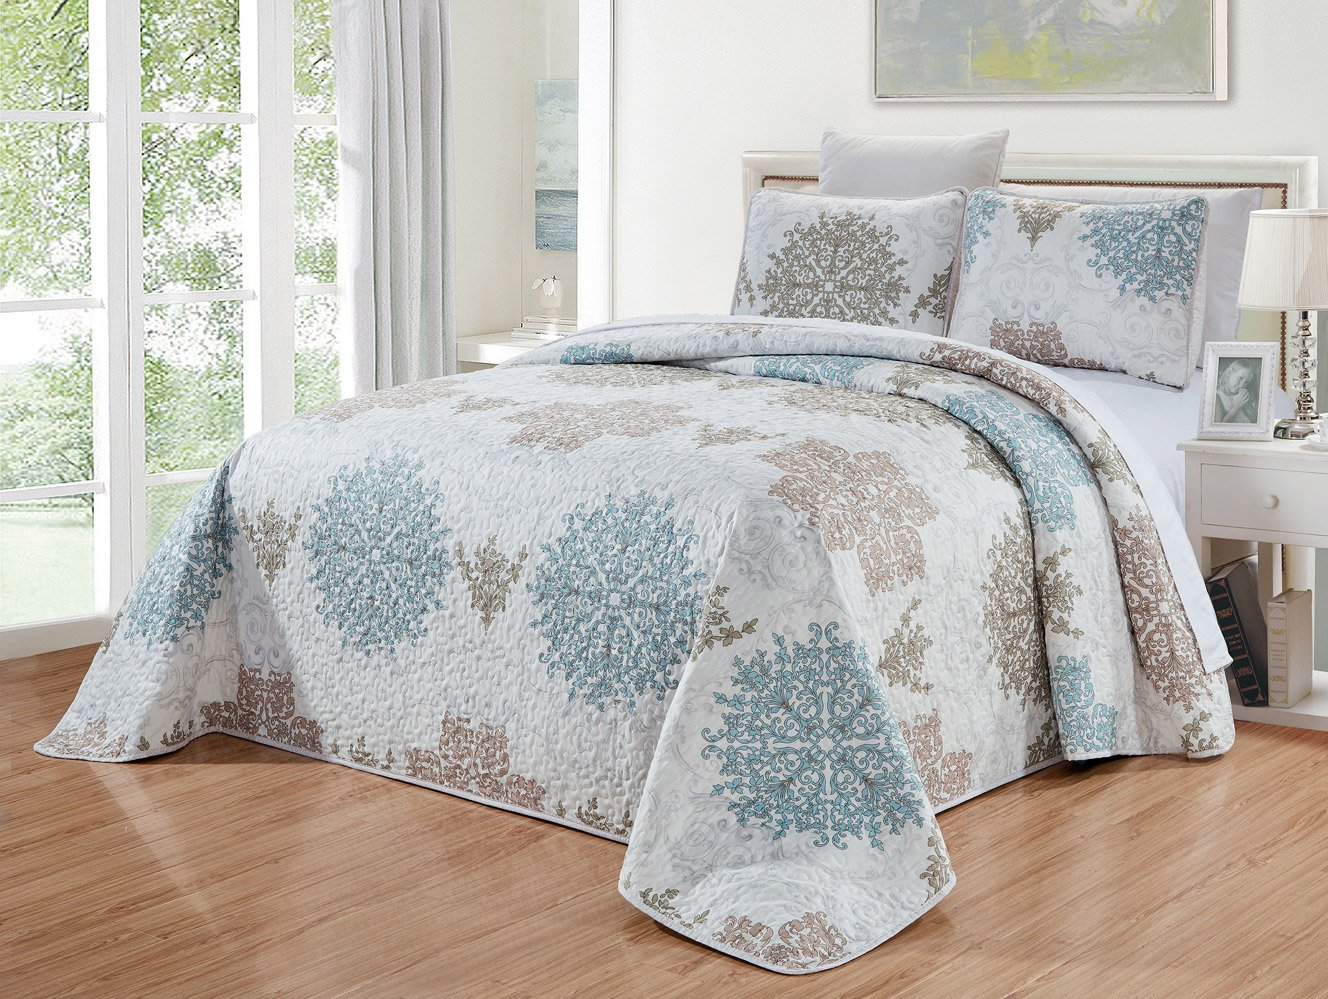 GrandLinen 3-Piece Fine printed Oversize Quilt Set Reversible Bedspread Coverlet (Double) FULL SIZE Bed Cover (Blue, White, Grey Scroll)